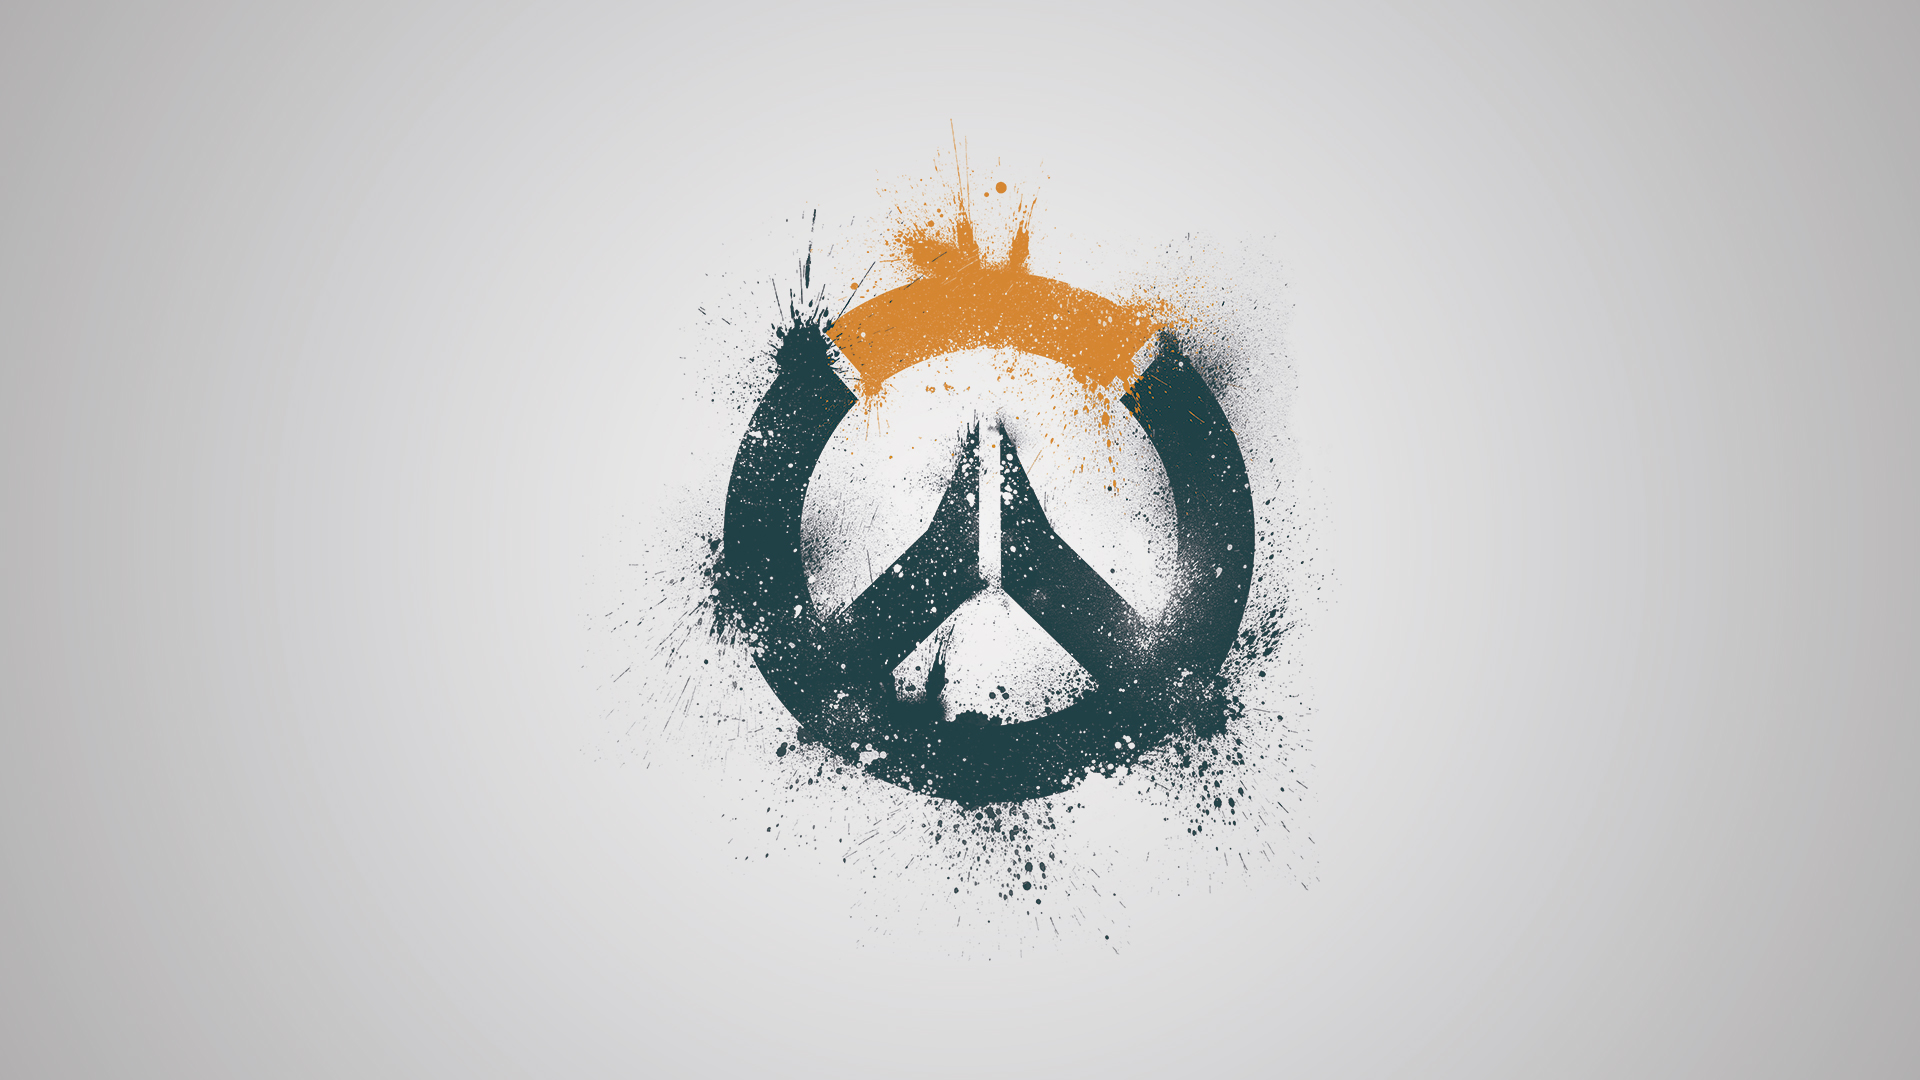 overwatch_wallpaper_hd_by_mrnocilla-d9q4